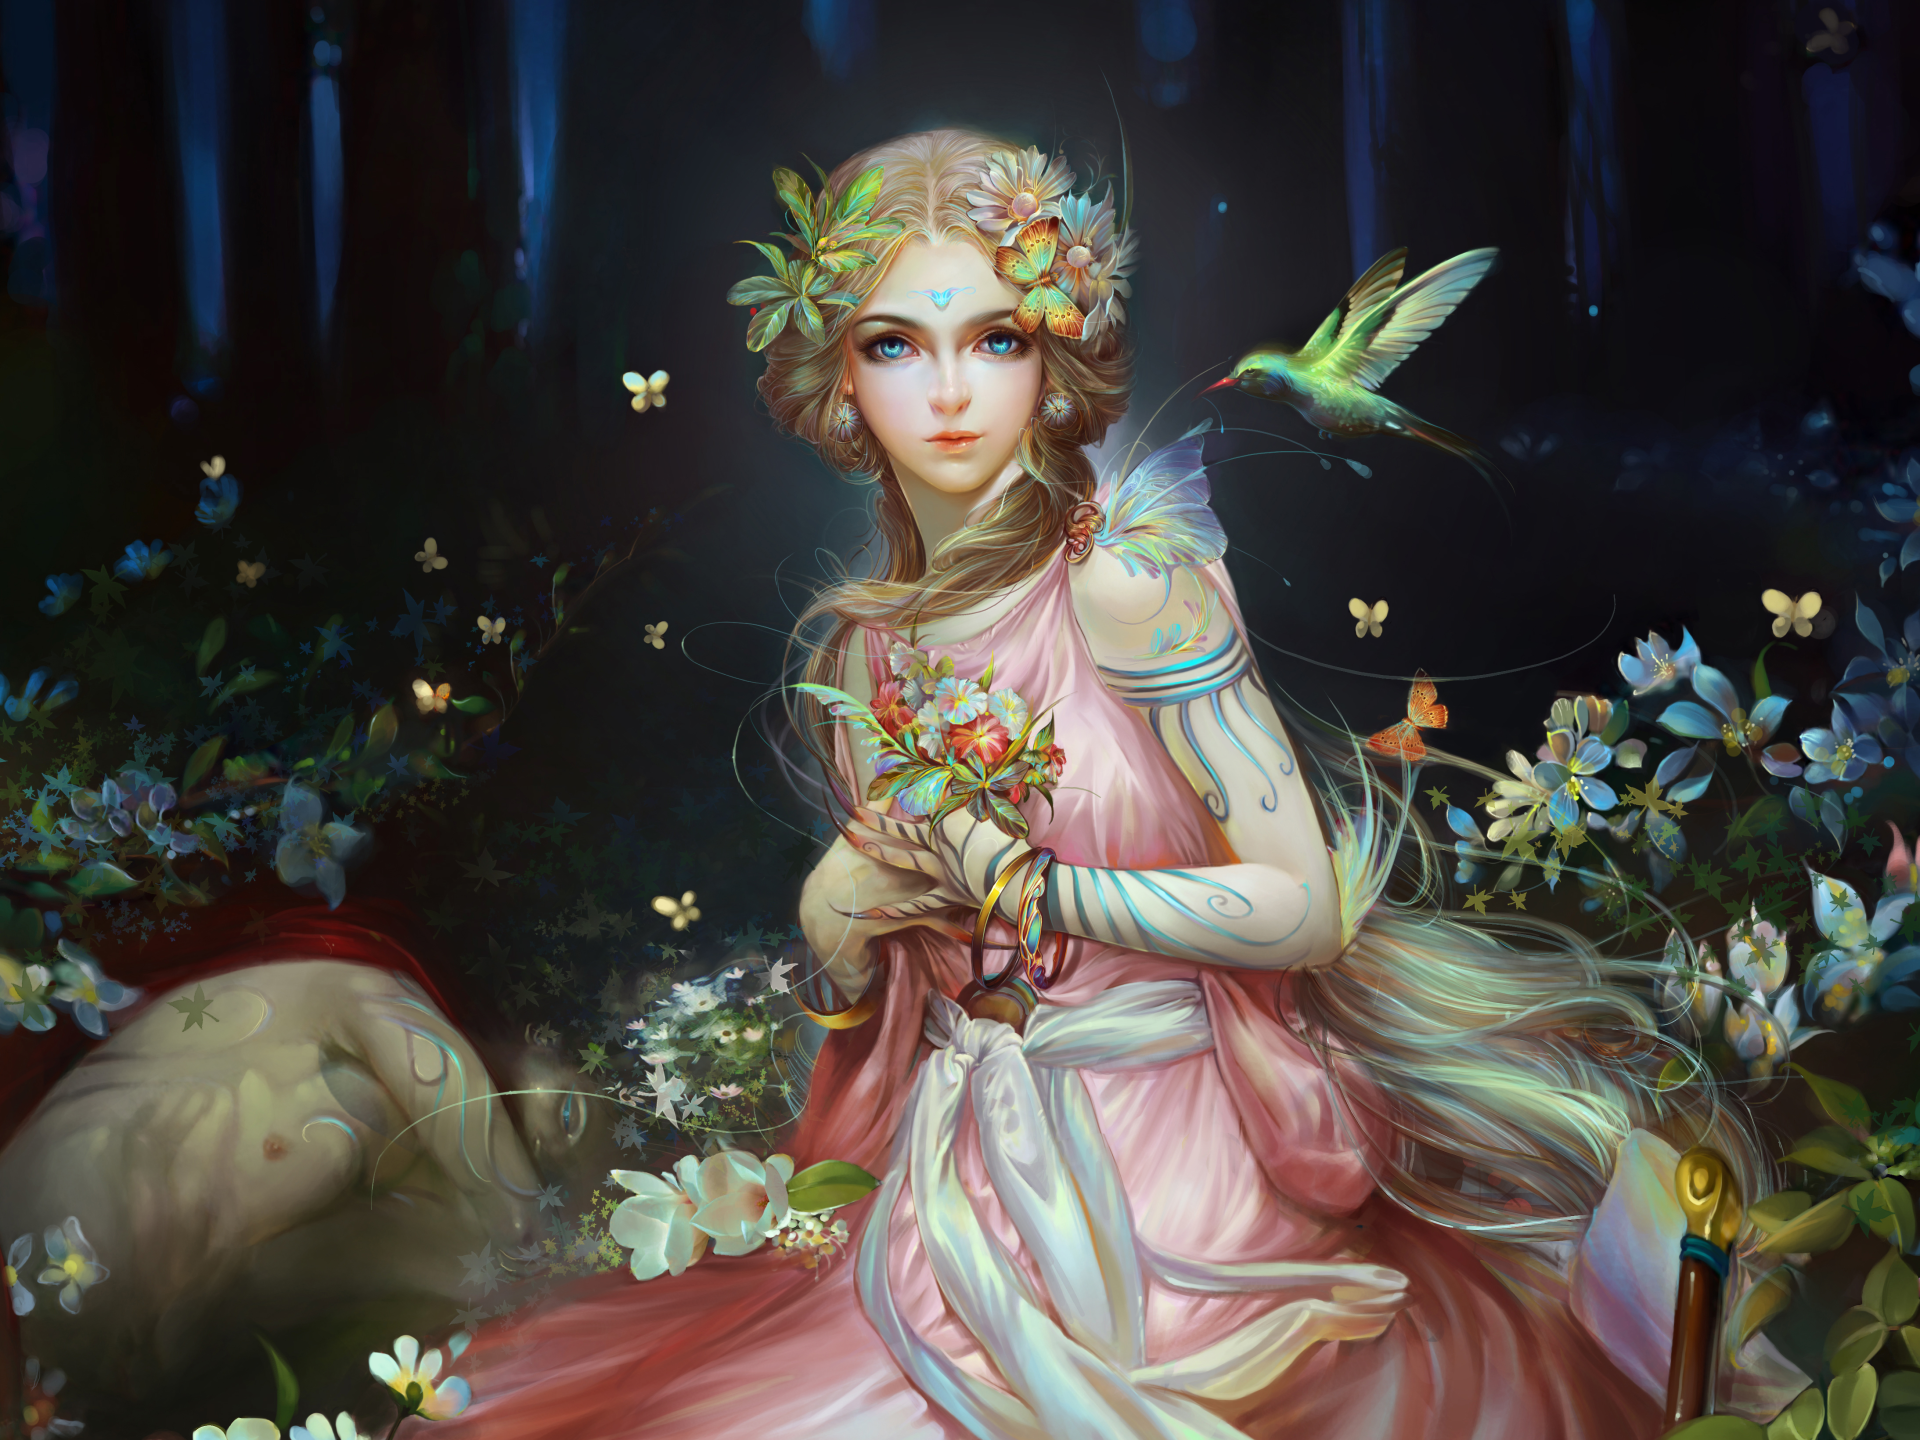 Forest Fairy 4k Ultra HD Wallpaper | Background Image ...